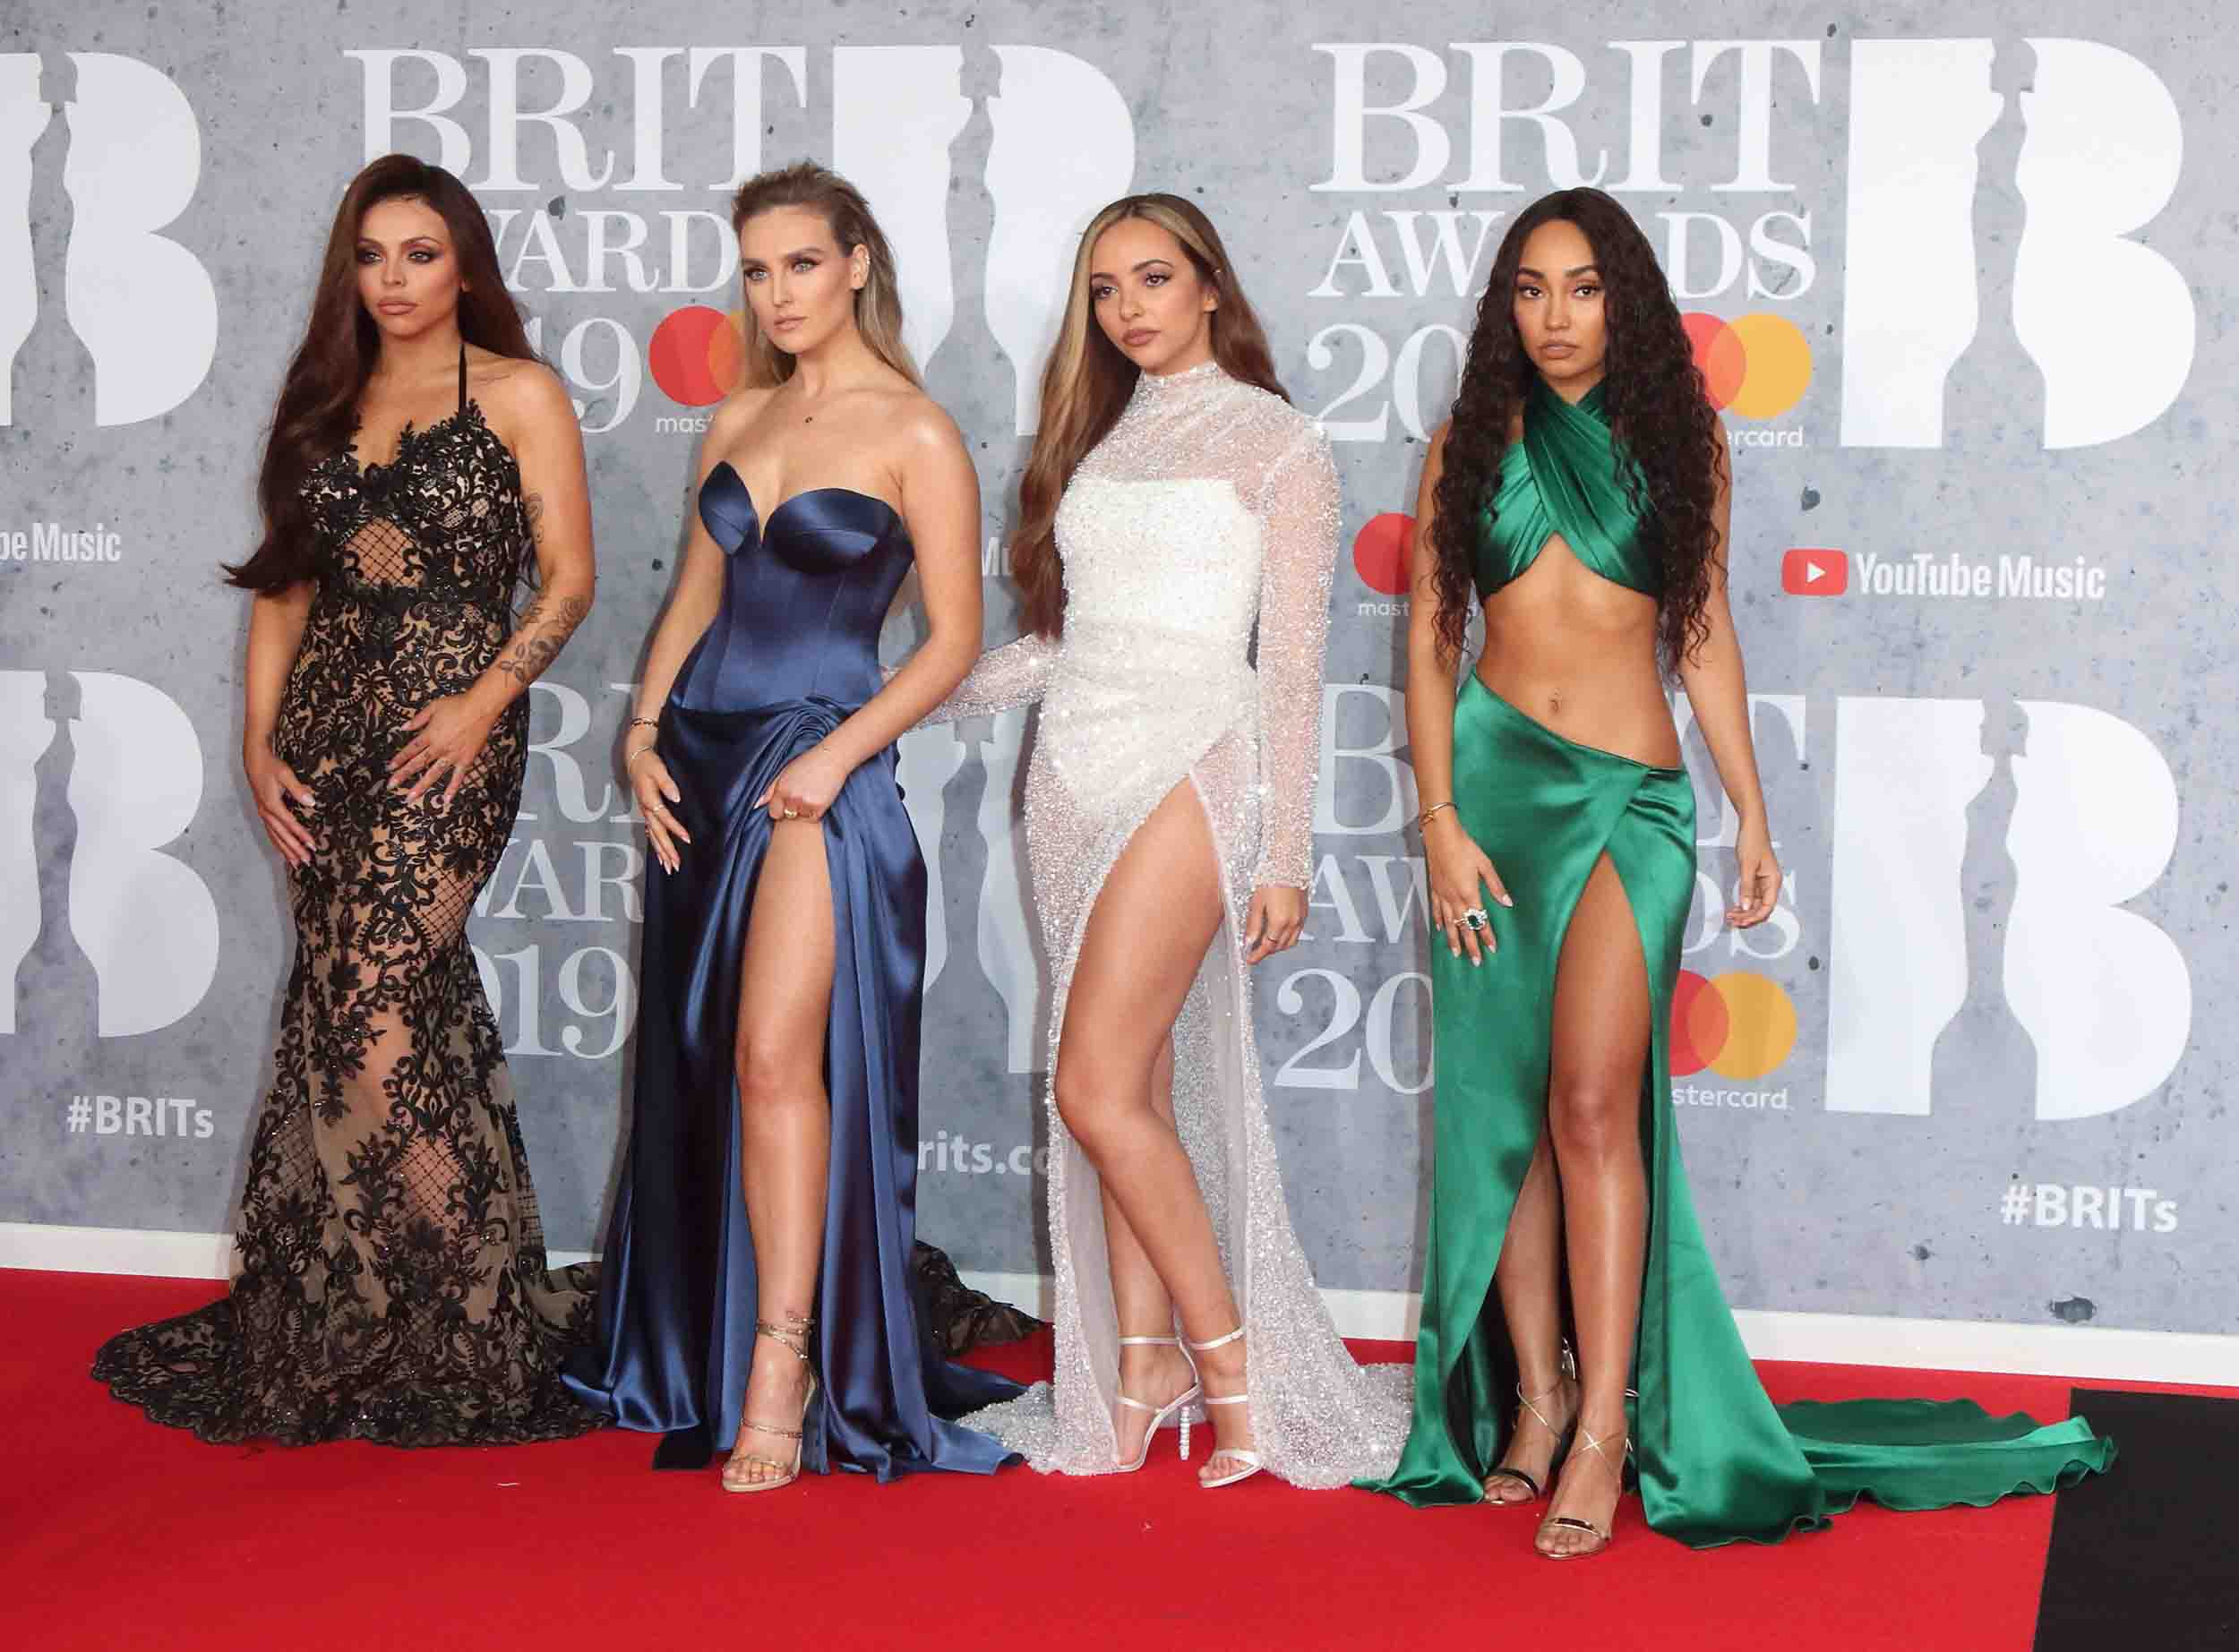 Little Mix - BRIT Awards 2019